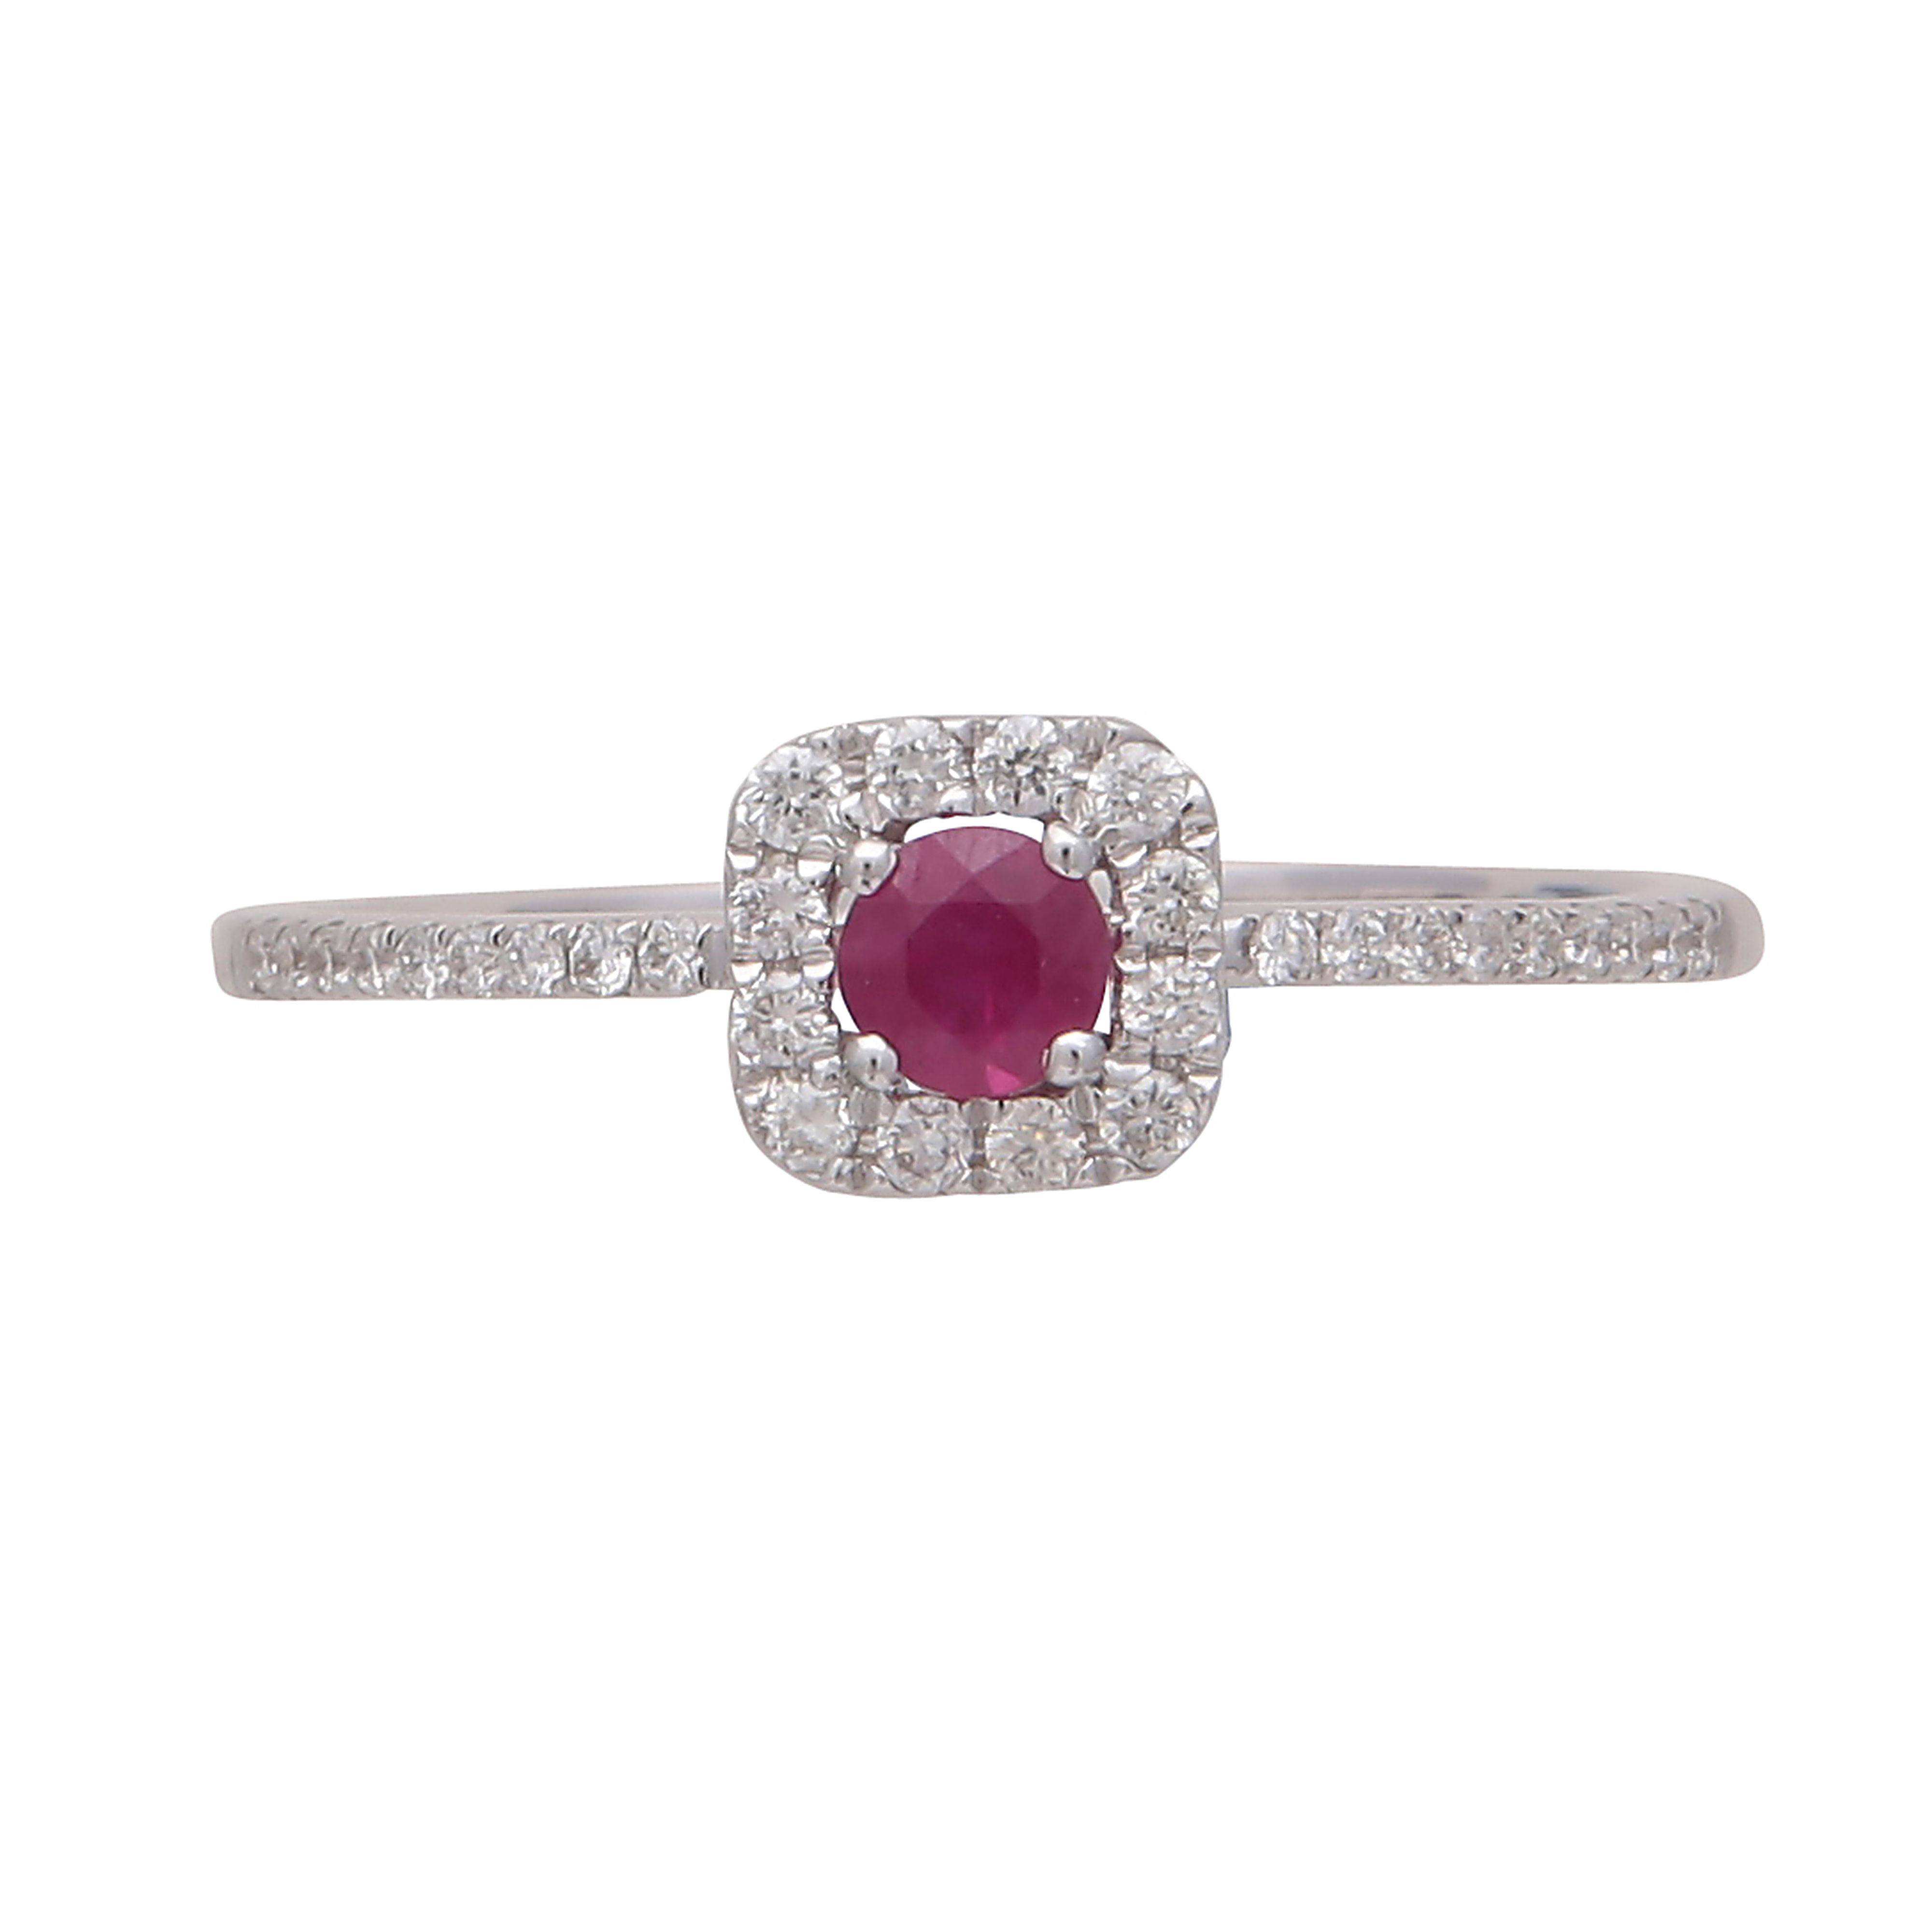 Los 190 - A ruby and diamond cluster ring in 18ct white gold the claw set round cut ruby surrounded by a